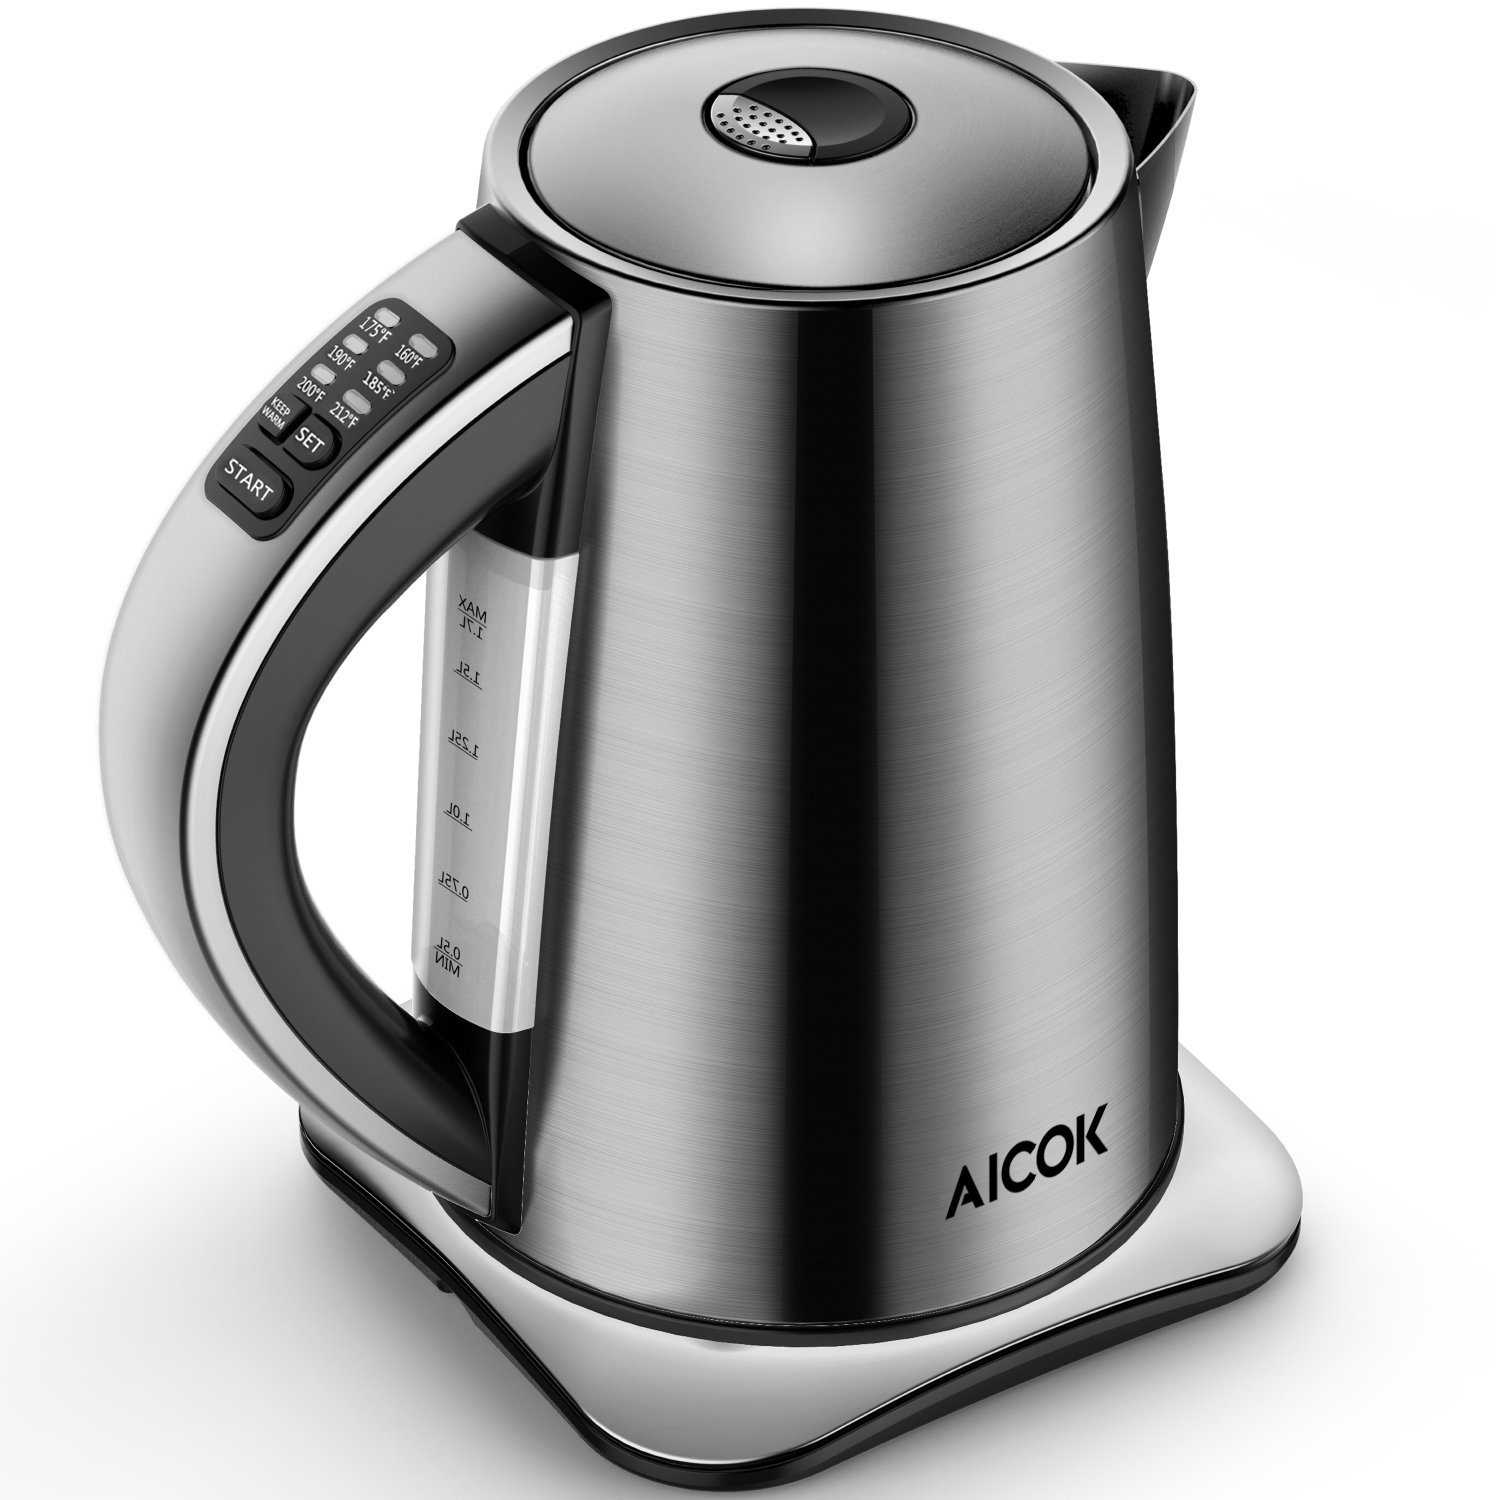 AICOK Electric Kettle Variable Temperature Stainless Steel Tea Kettle, Cordless Electric Water Kettle with 1500W SpeedBoil, Auto Shut Off and Boil-Dry Protection, 1.7-Liter Boiler by AICOK